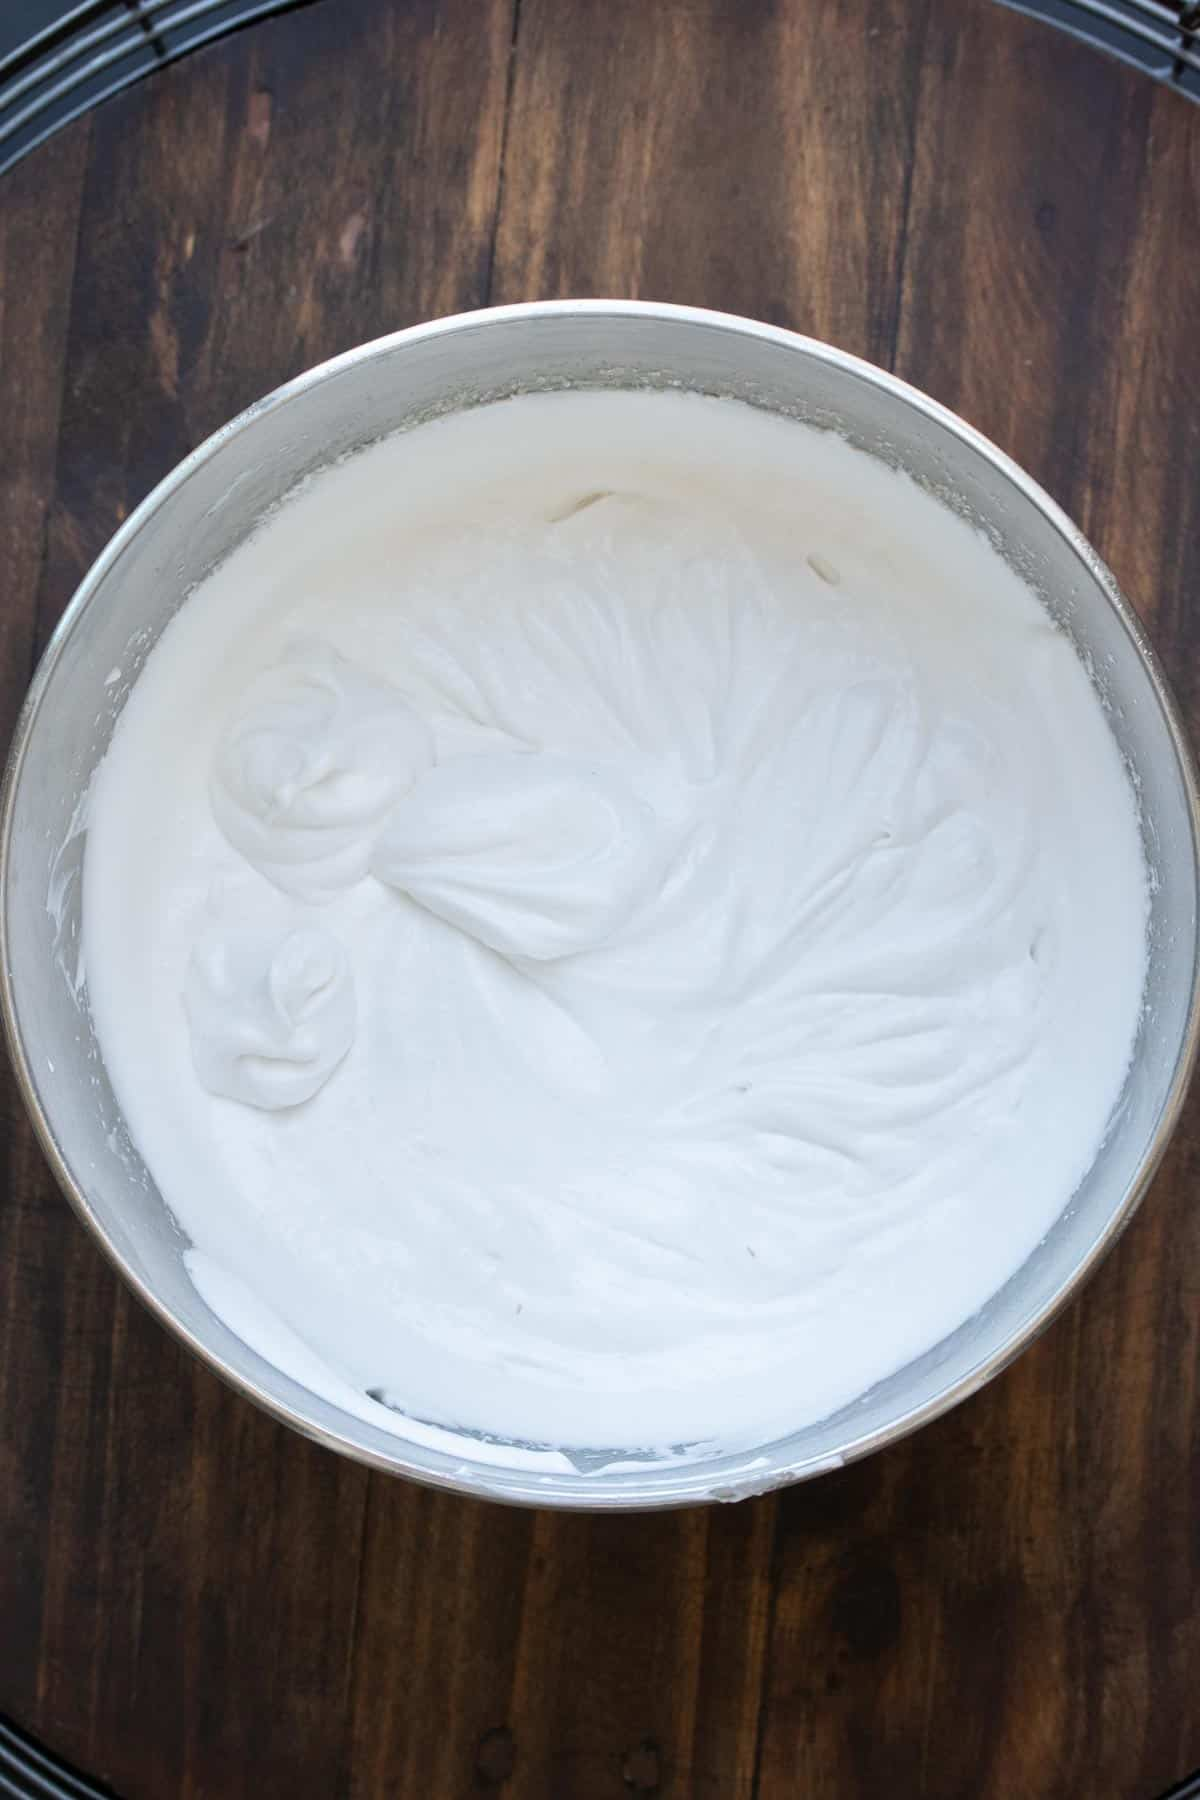 Top view of coconut whipped cream in a silver bowl